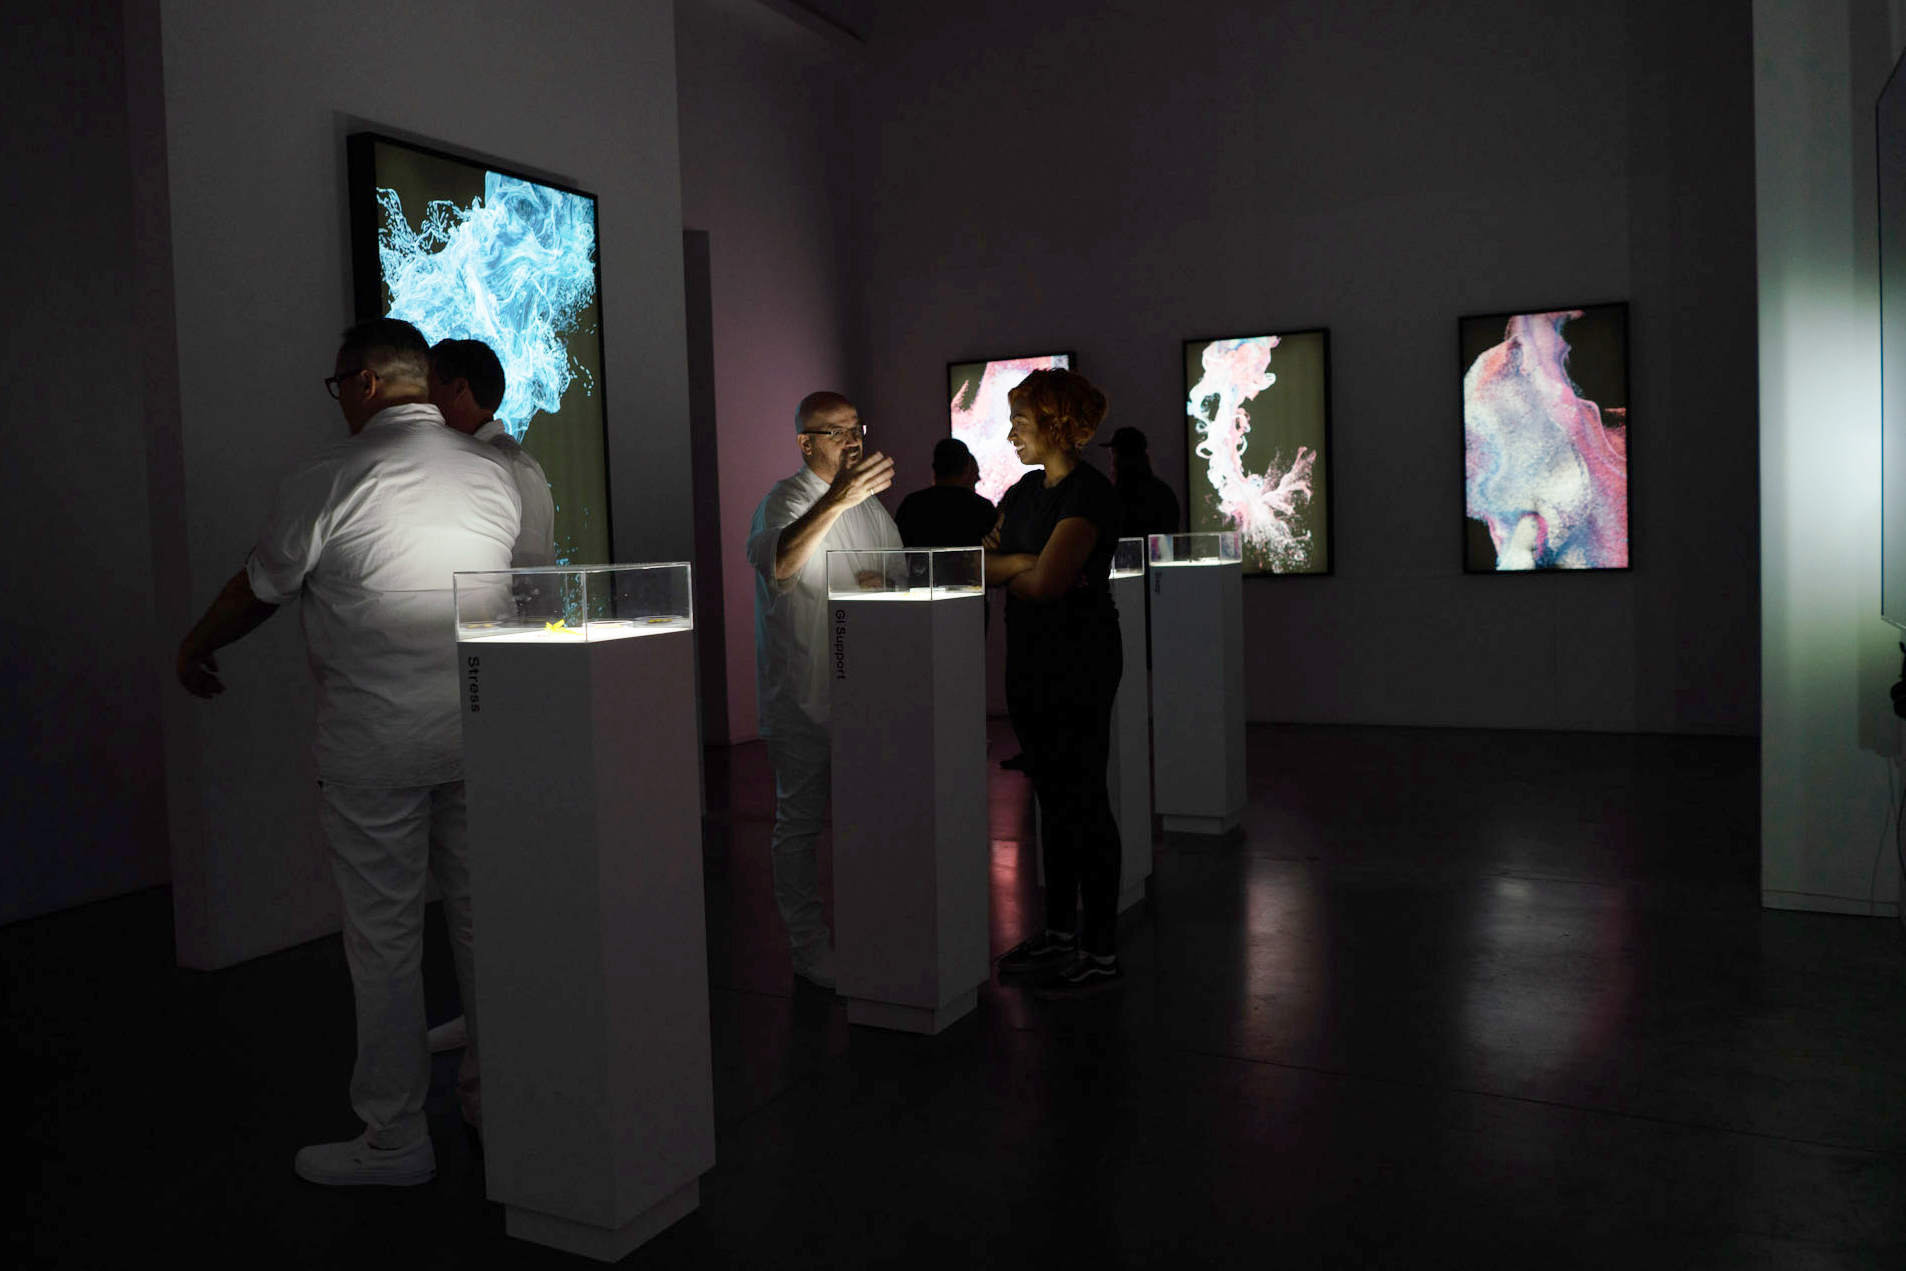 frontierwithin-experience-gallery2.jpg